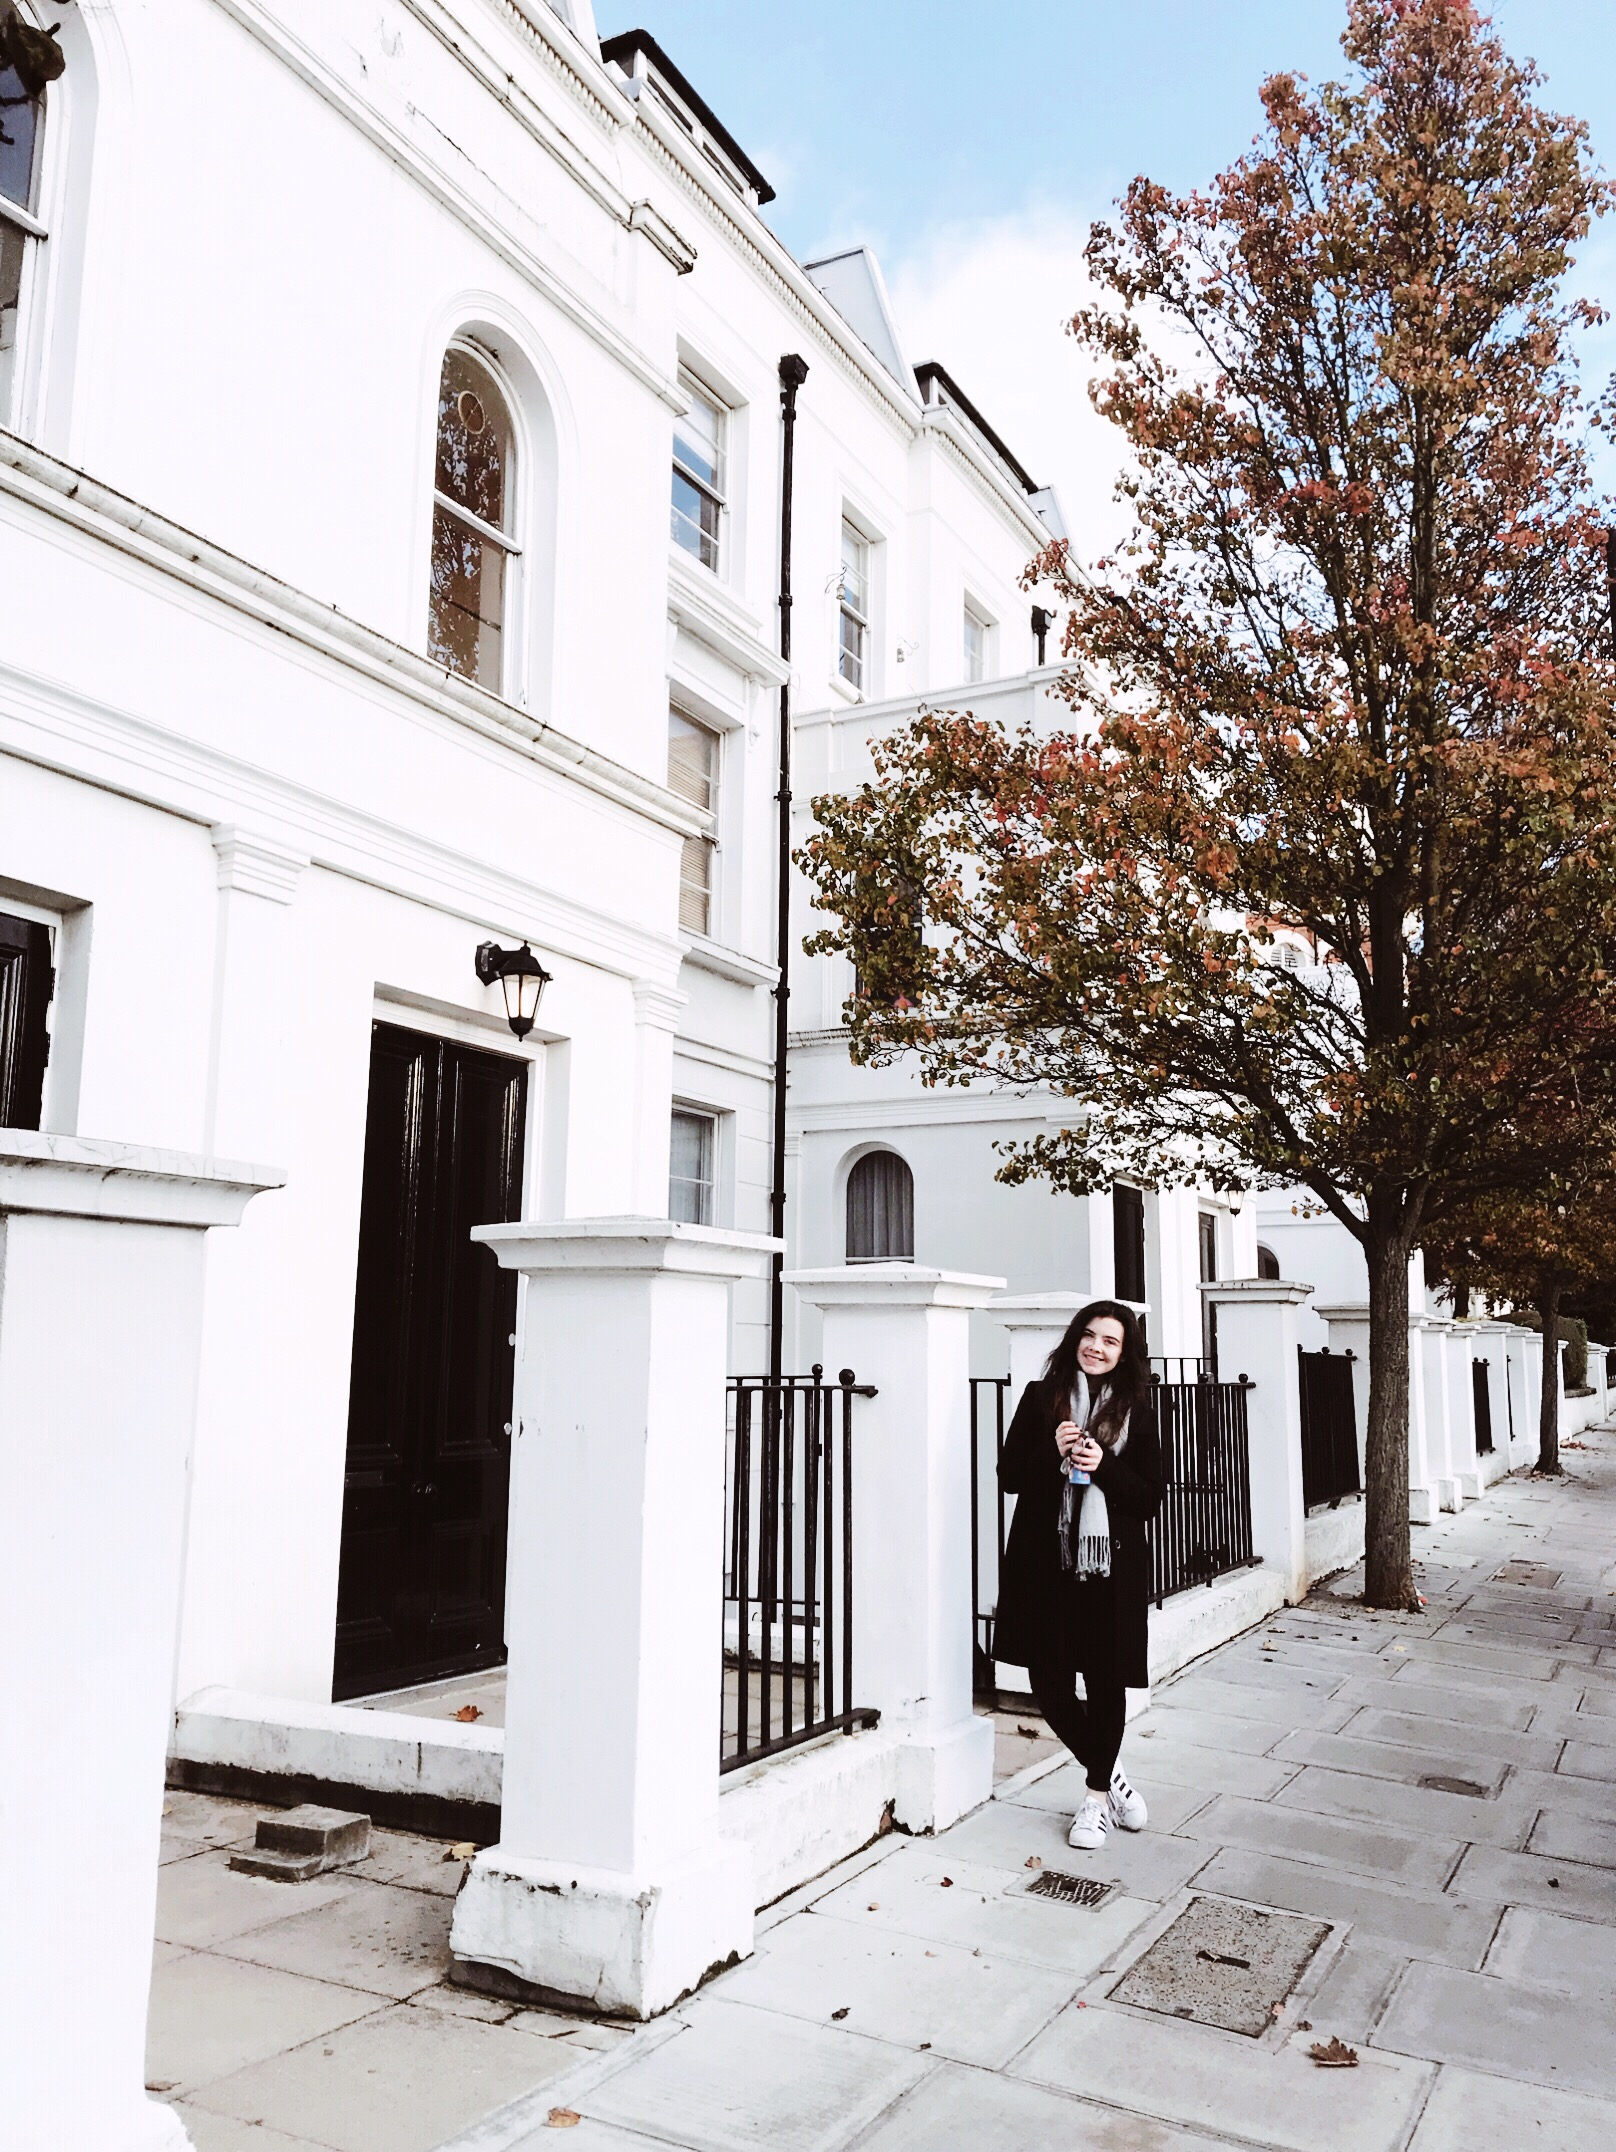 1. Accents.  Scouse, Manchester, Yorkshire - I never ever thought I'd miss hearing the Northern accent but oh my, I do. Now, whenever I hear one, it just makes me feel so homely and I love it.   2. Nobody mocking my own accent.  Speaking of accents, everyone seems to comment on my own now. When I'm in London, I'm ' so northern ' but then I get home and apparently I'm getting more southern and I just can't win.   3. Being able to stand on either side of an escalator without being shouted at.  Also, what happened to the general life rule of 'keep to the left'.  London, why are you so complicated?    4. Home Bargains.  Home Bargains is one of my favourite stores in the North, and you guys are 100% missing out down here.   5. The bap/barm/bun/teacake/muffin debate.  This used to divide the office at least once a week, but it doesn't seem to be an issue down here?   6. Renting a 2 bedroom, 2 bathroom, city centre flat in the North for the same monthly cost as a double room in the outskirts of London.    7. Not feeling the need to quite literally run everywhere.  Seriously guys, why can't you all just chill out for a sec?